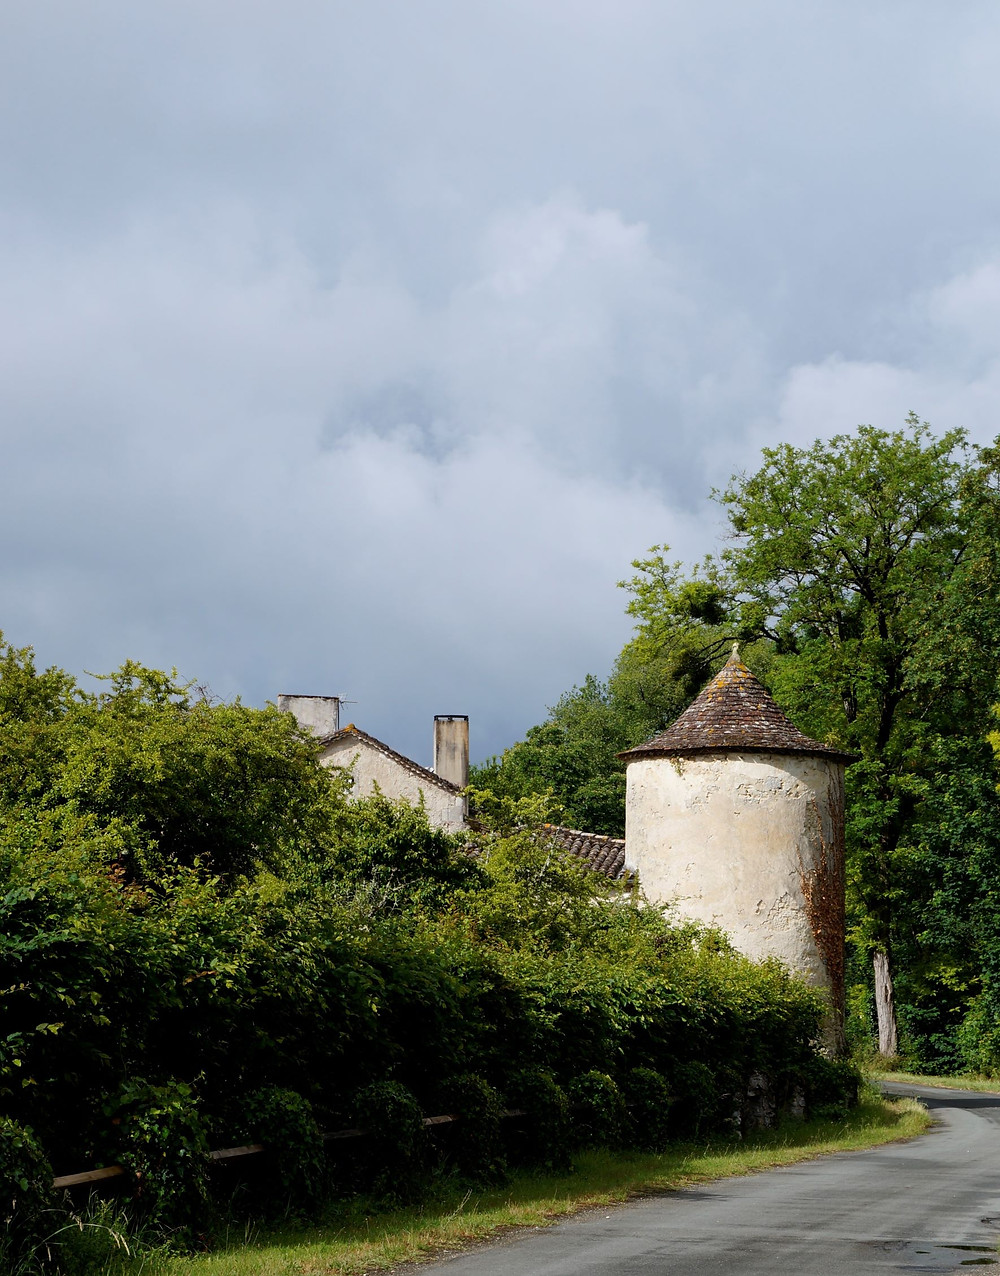 the first visible turret as you approach the château